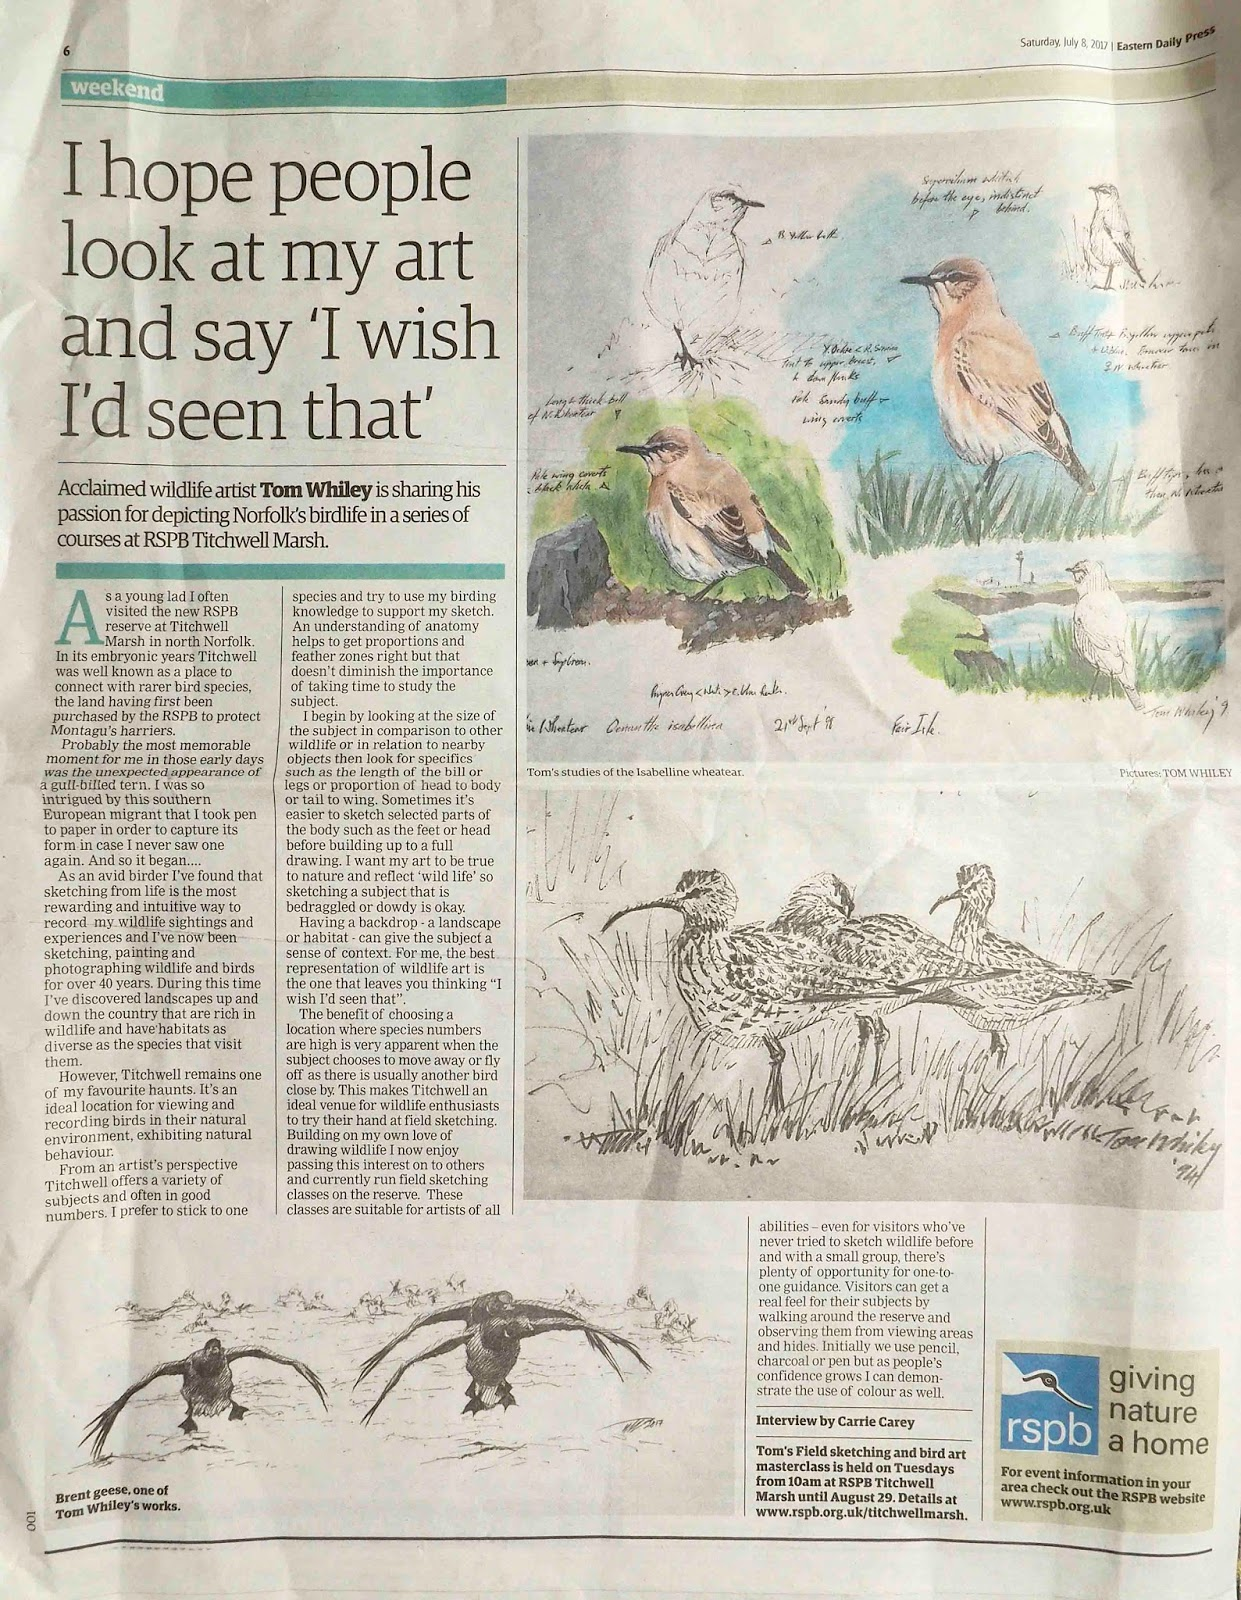 Field Sketching Masterclass, Titchwell Marsh | Join wildlife artist Tom Whiley for a bird sketching master class. Tom will guide you through the process of observing wildlife and committing images to paper. Various techniques will be demonstrated with a particular emphasis on field observation. | Art, nature, RSPB, Titchwell, environment, outdoor